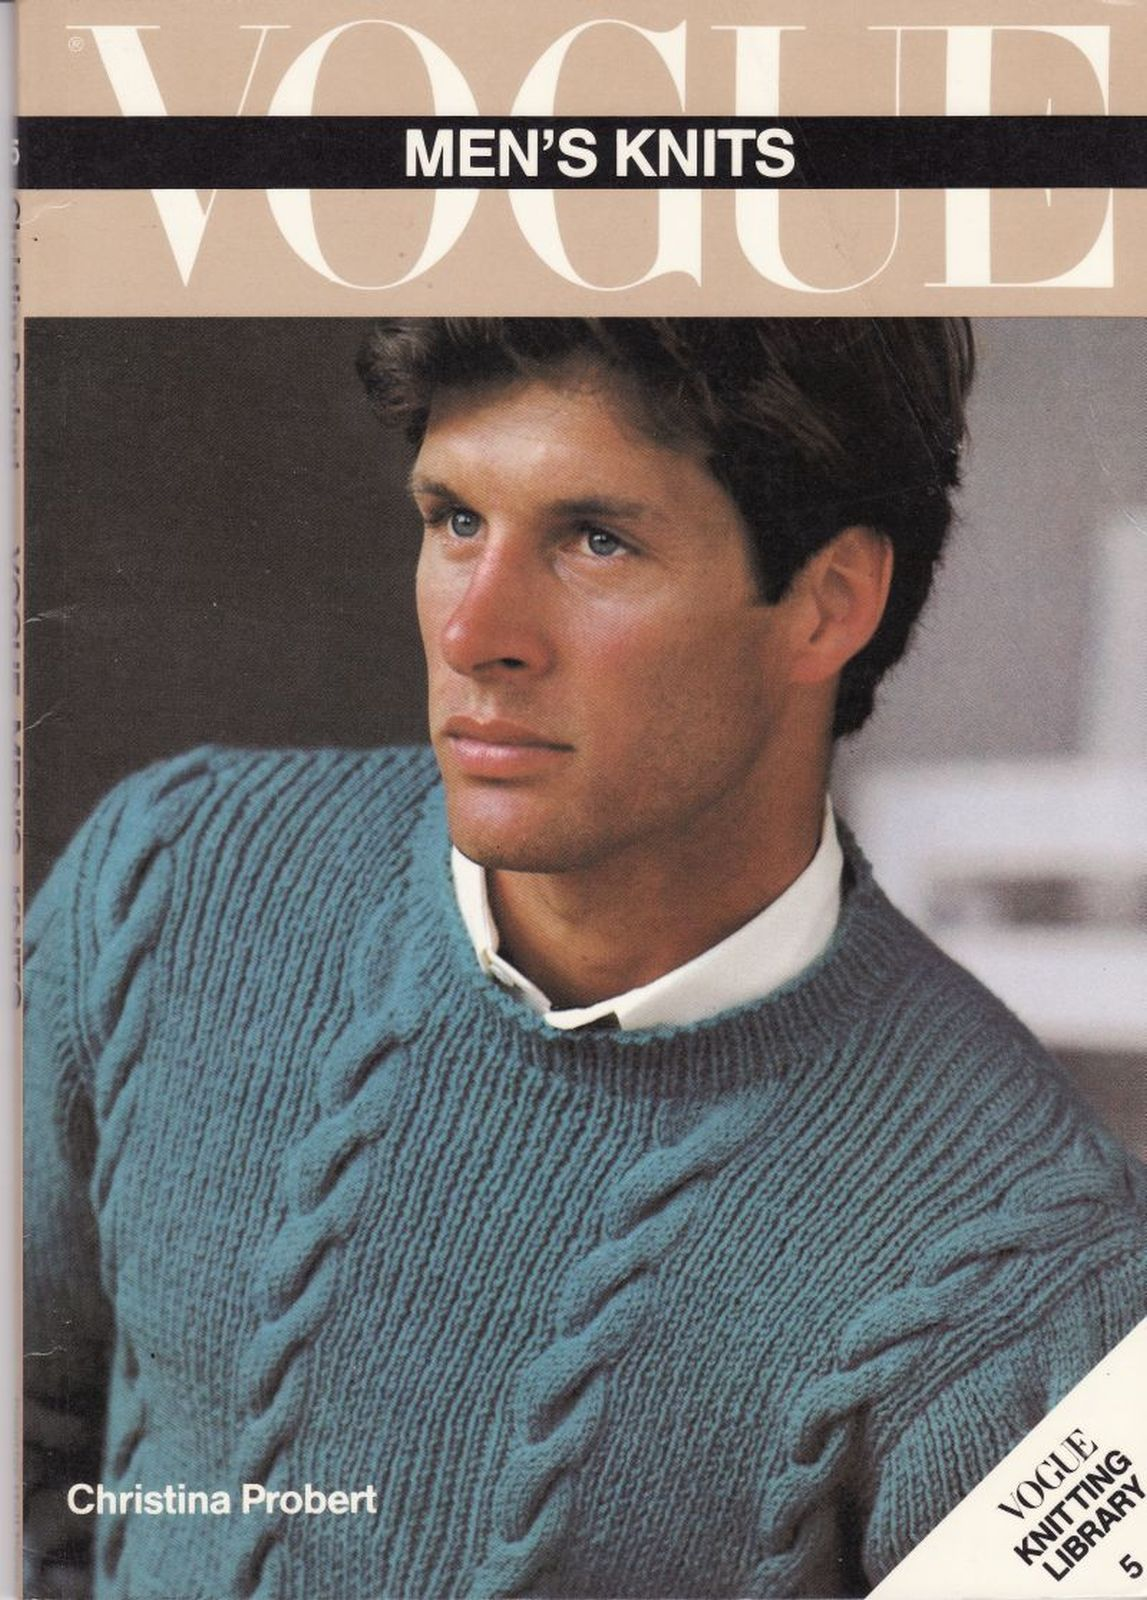 Vtg Vogue Mens Knits 25 Designs Tennis Sailing Ski Cricket Sweaters Patterns